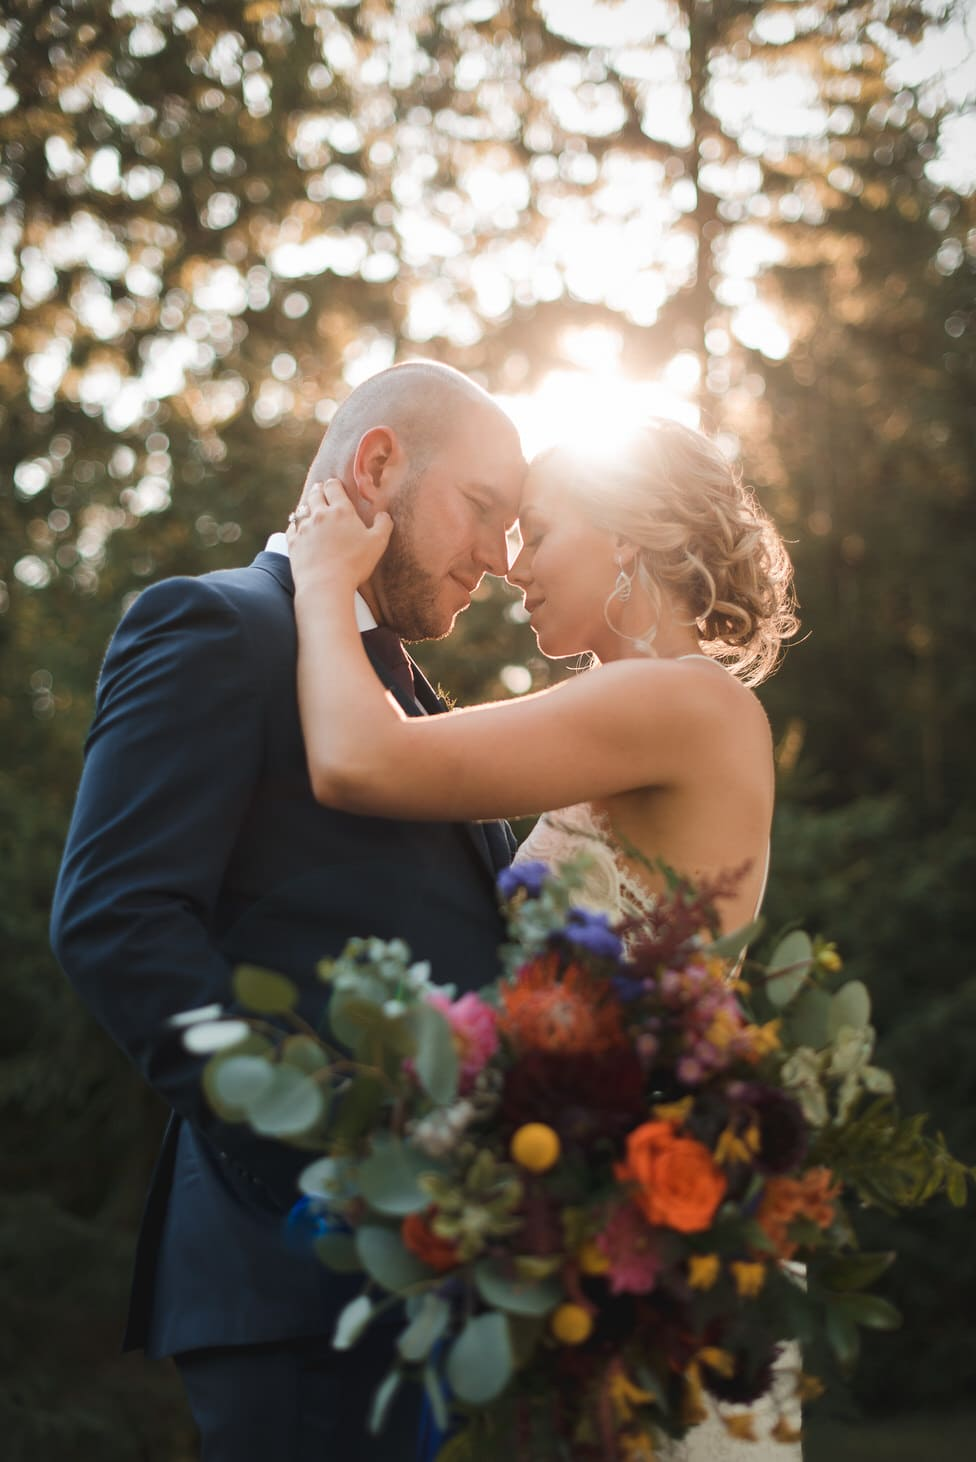 golden hour light shines onto bride and groom in emotional portrait, wedding flowers by designs by cate stratford